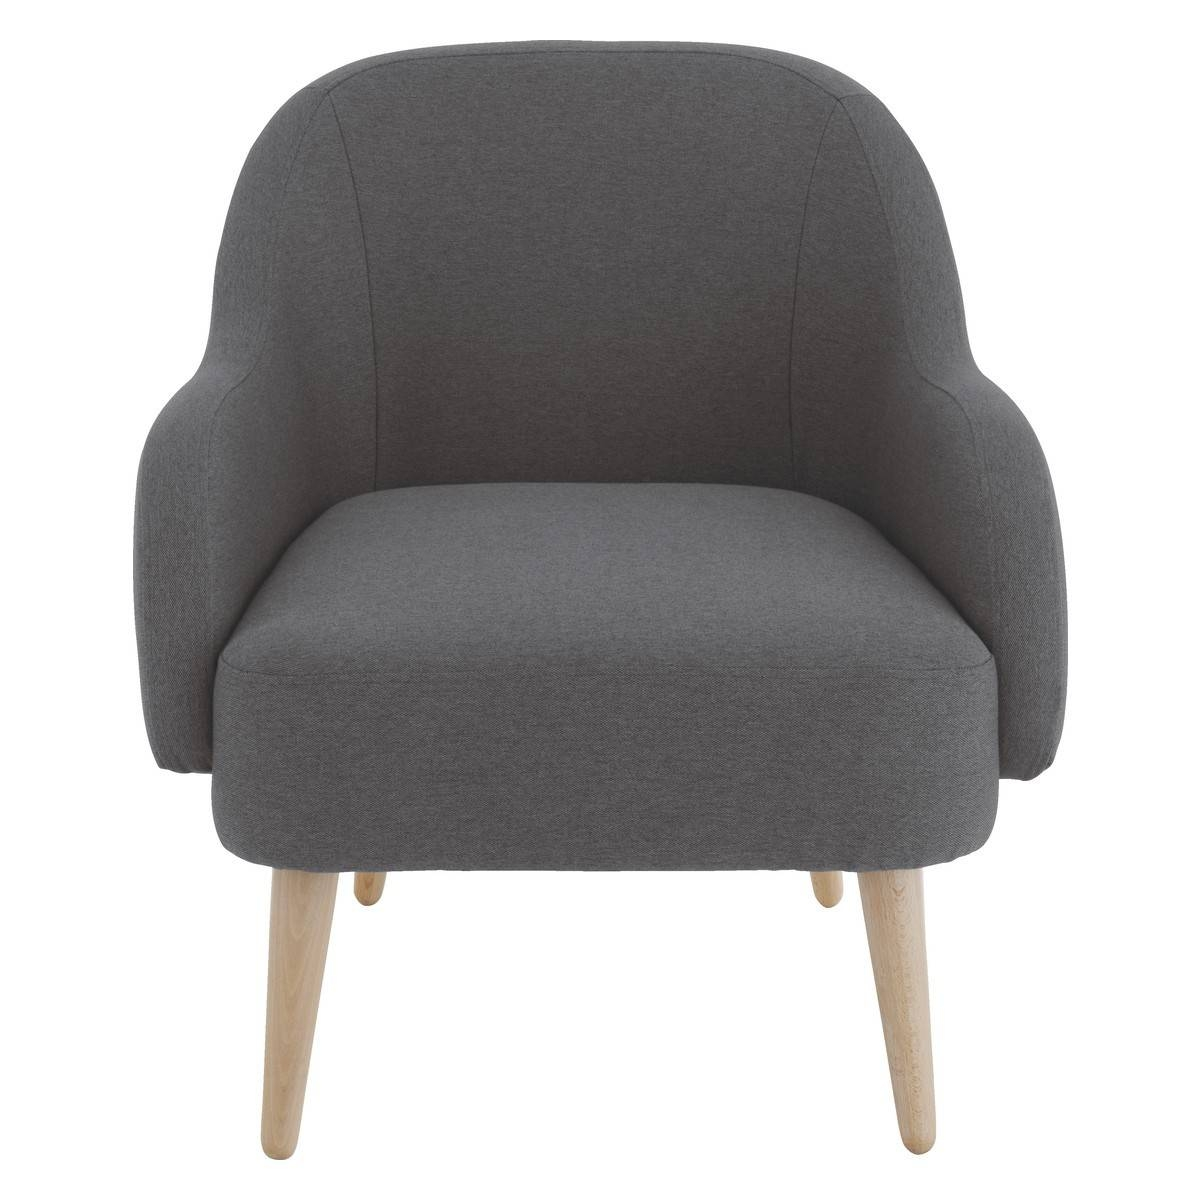 Momo Charcoal Fabric Armchair | Buy Now At Habitat Uk within Fabric Armchairs (Image 20 of 30)